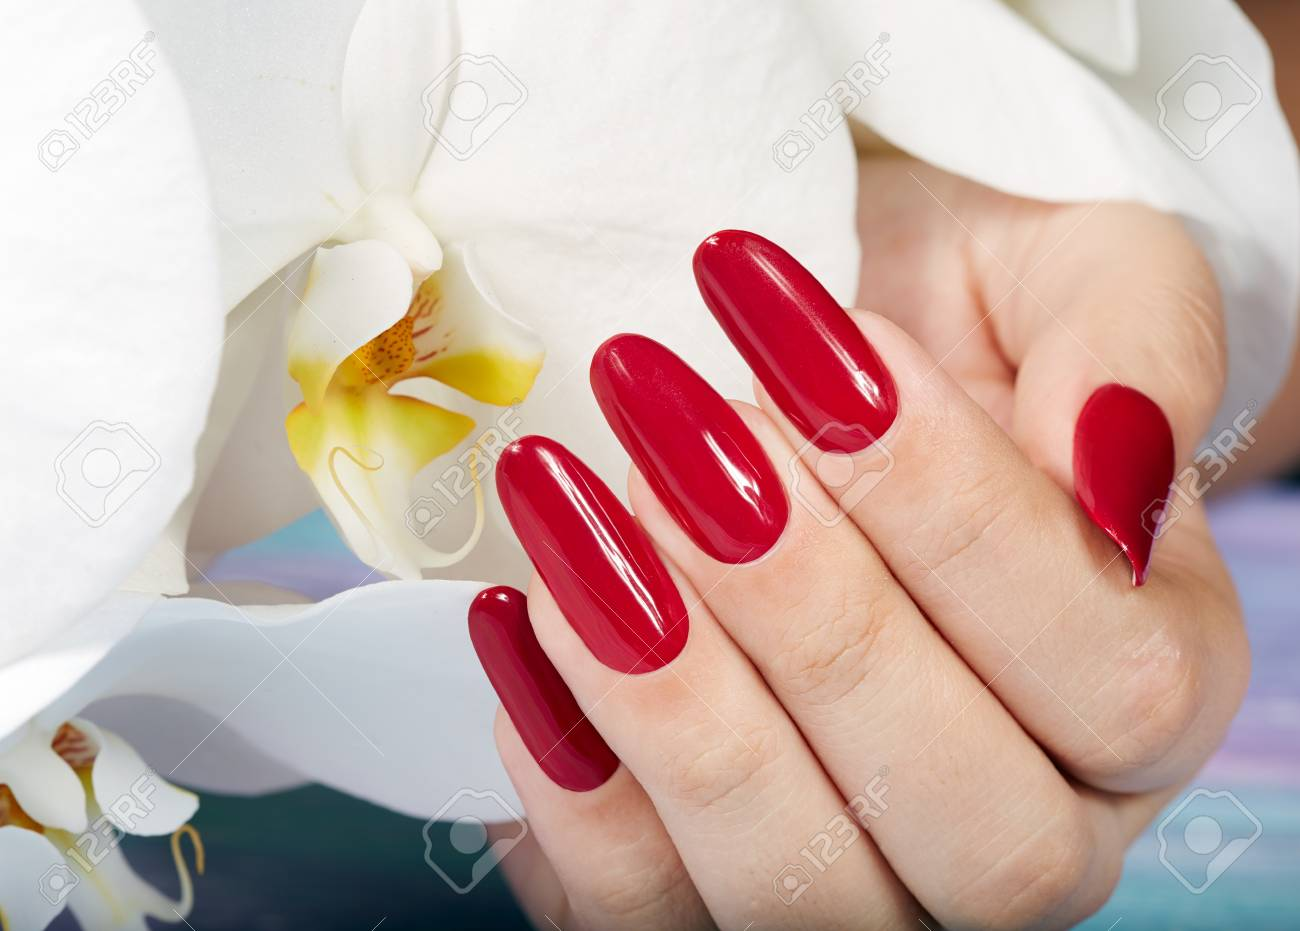 Hand With Long Artificial Manicured Nails Colored With Red Nail ...